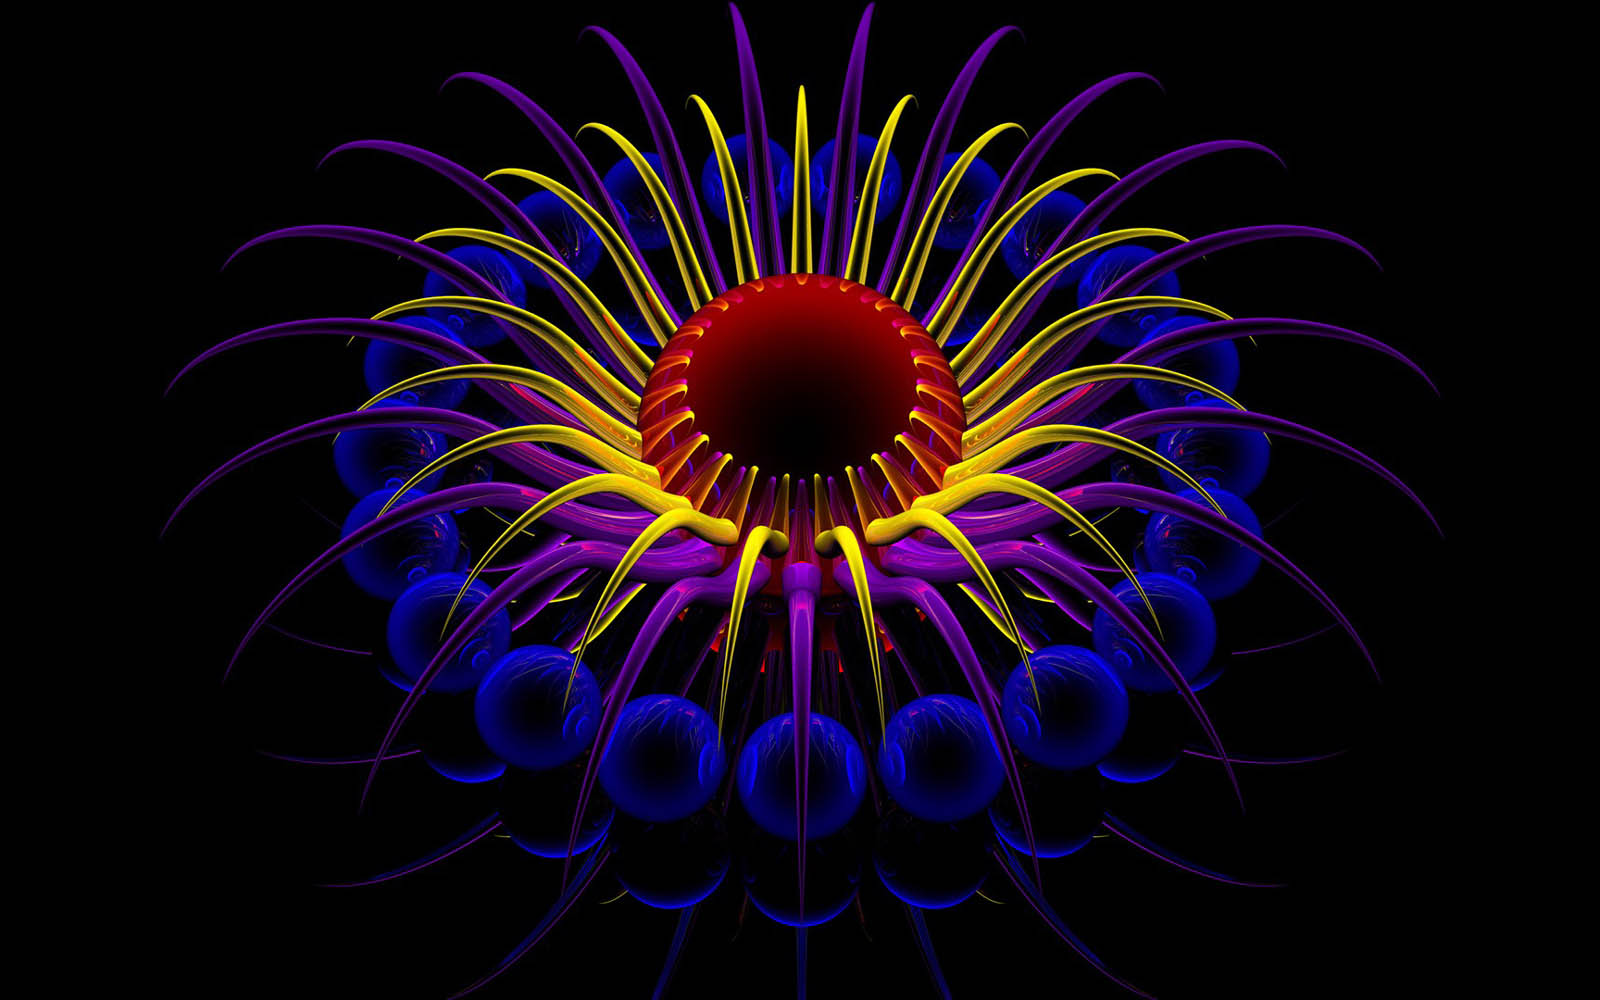 Neon Art Wallpapers Neon Art DesktopWallpapers Neon Art Desktop 1600x1000